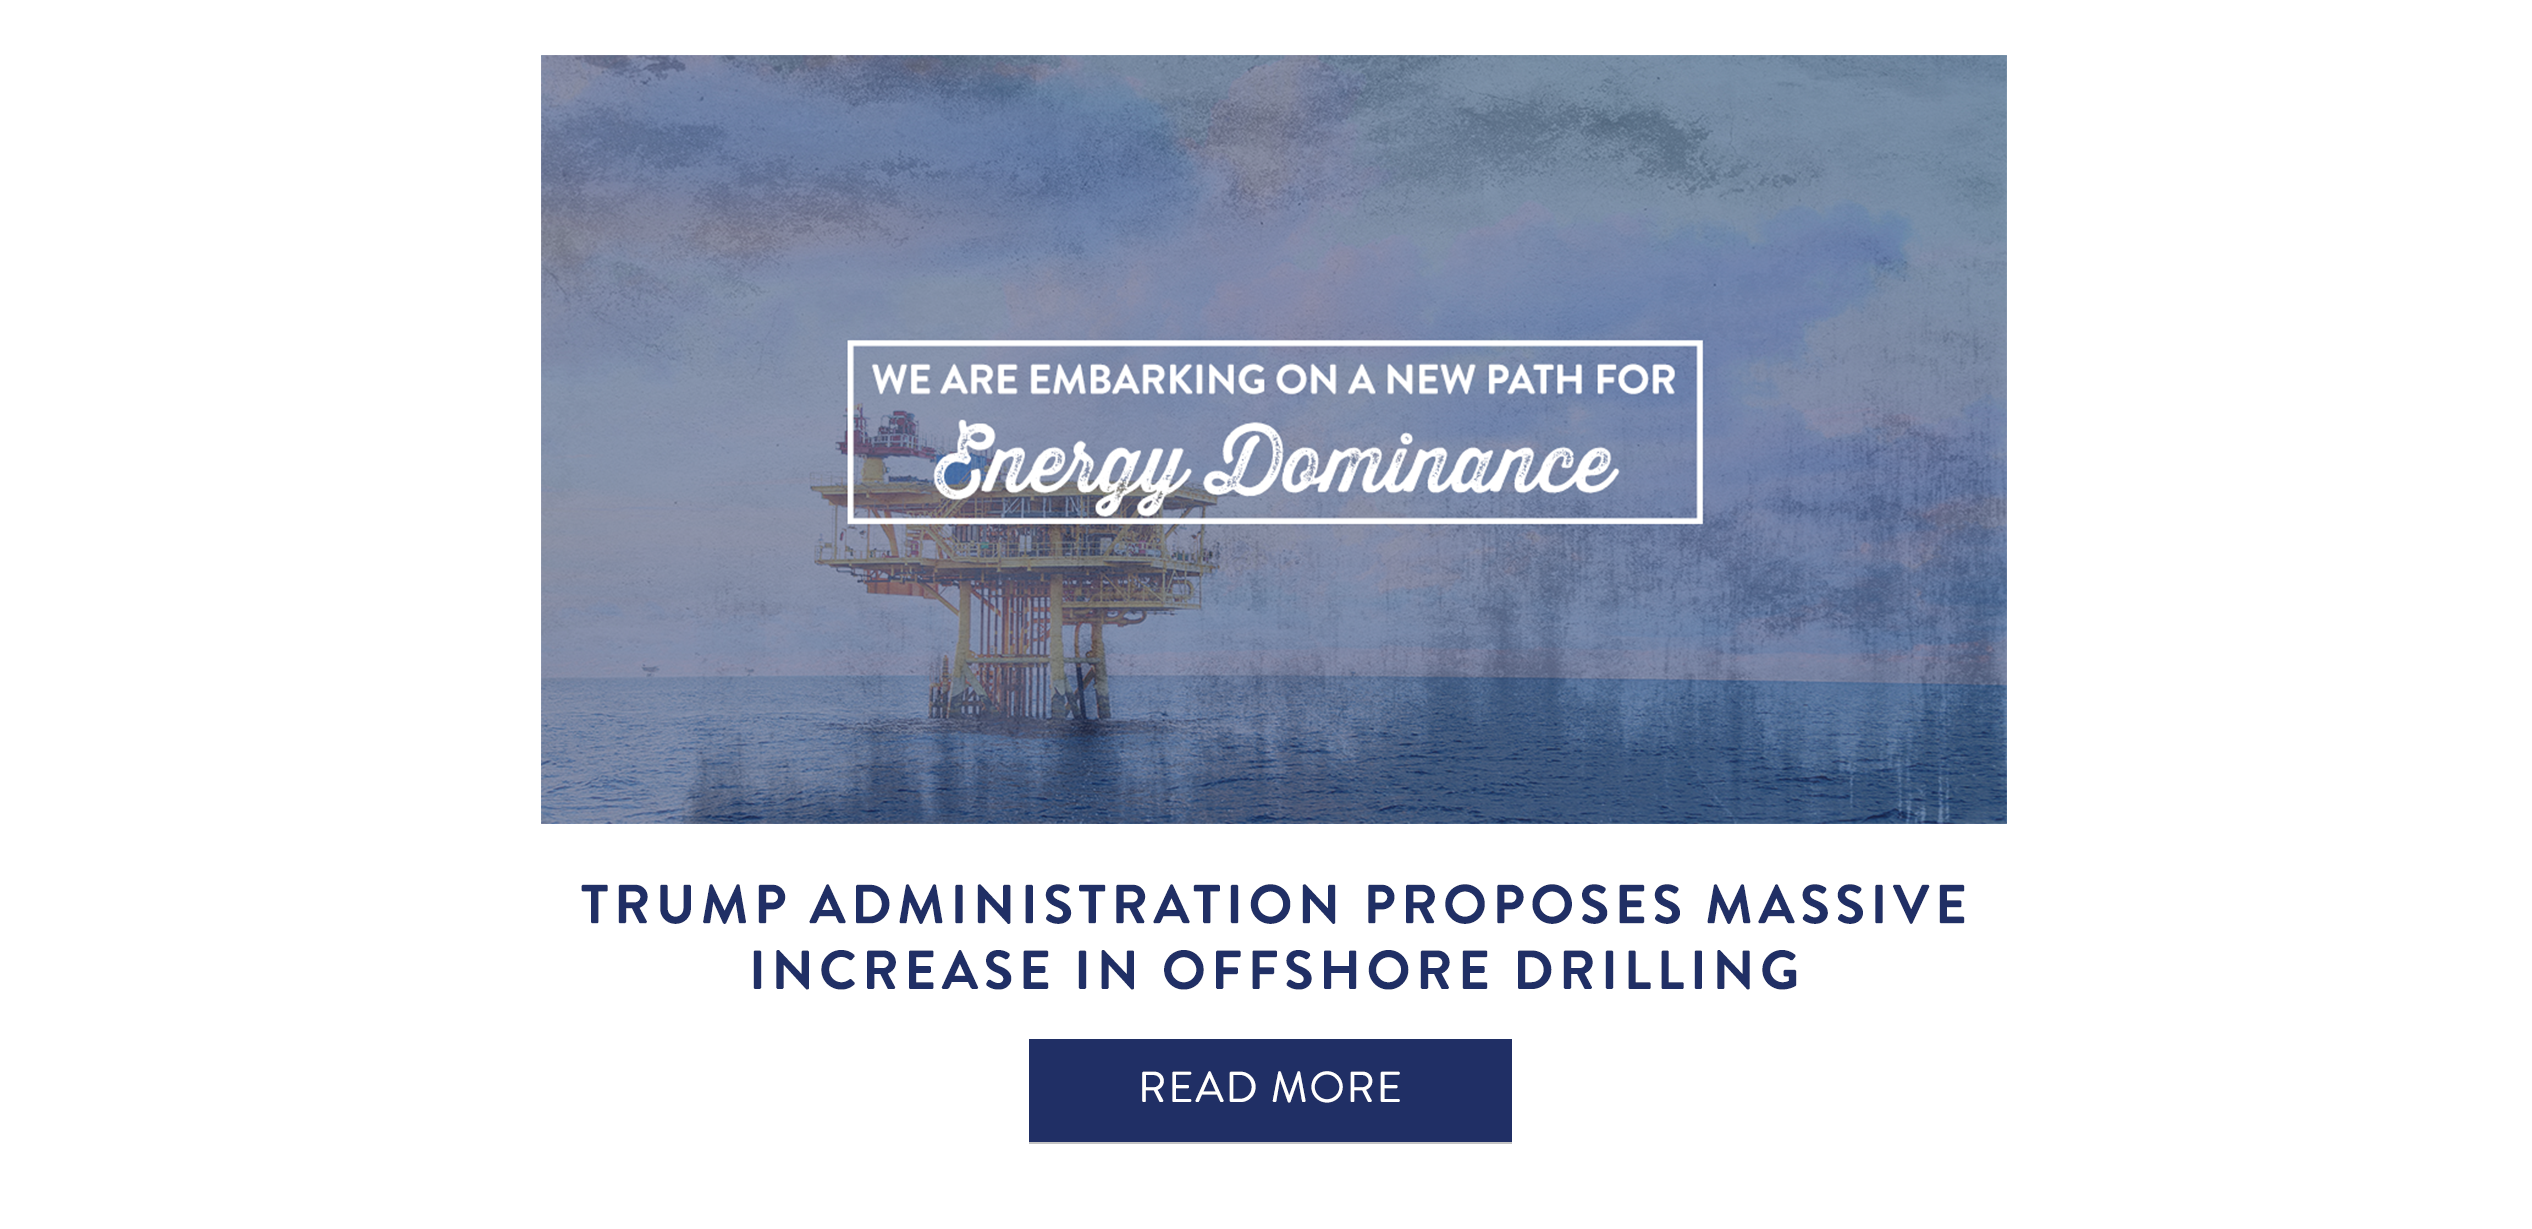 Trump Administration Proposes Massive Increase In Off-shore Drilling